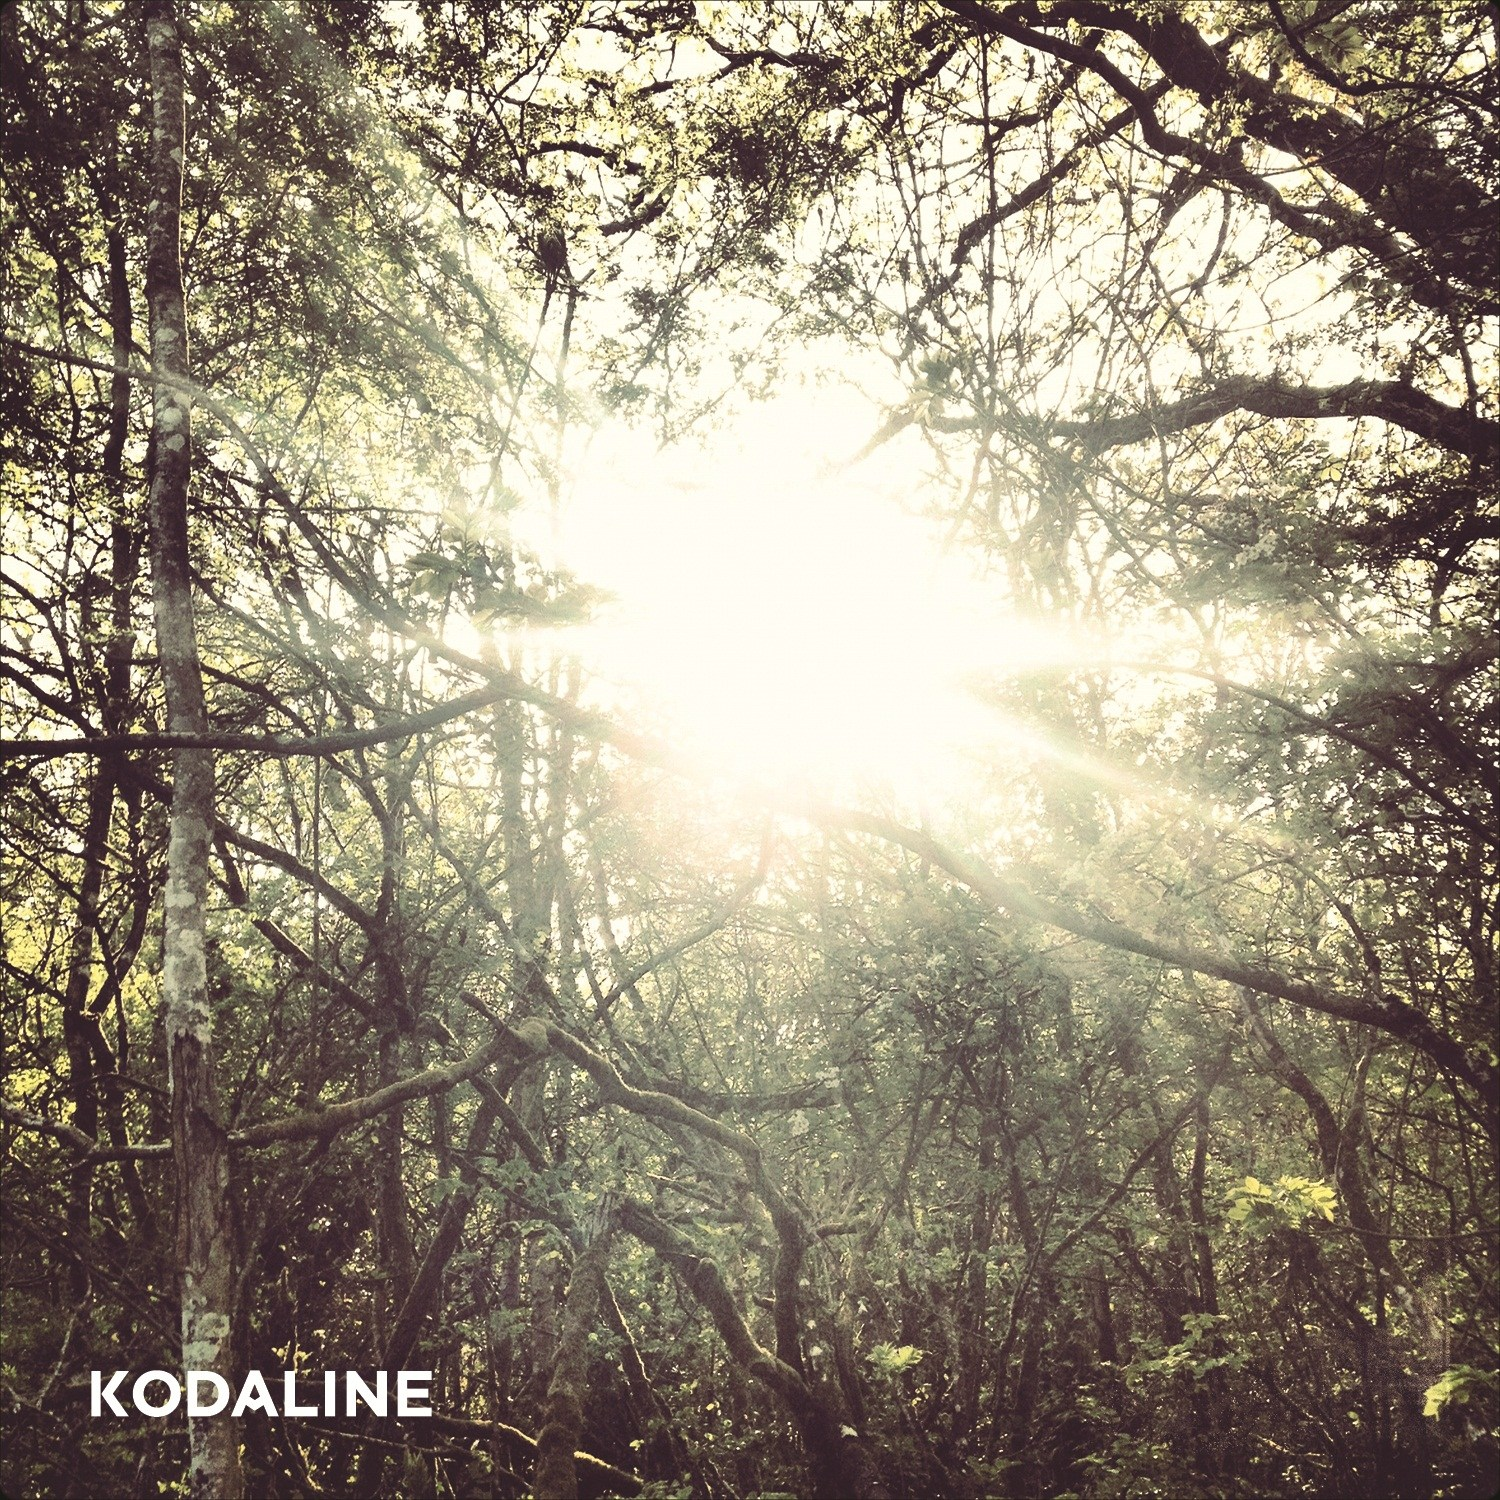 The Kodaline - All I Want